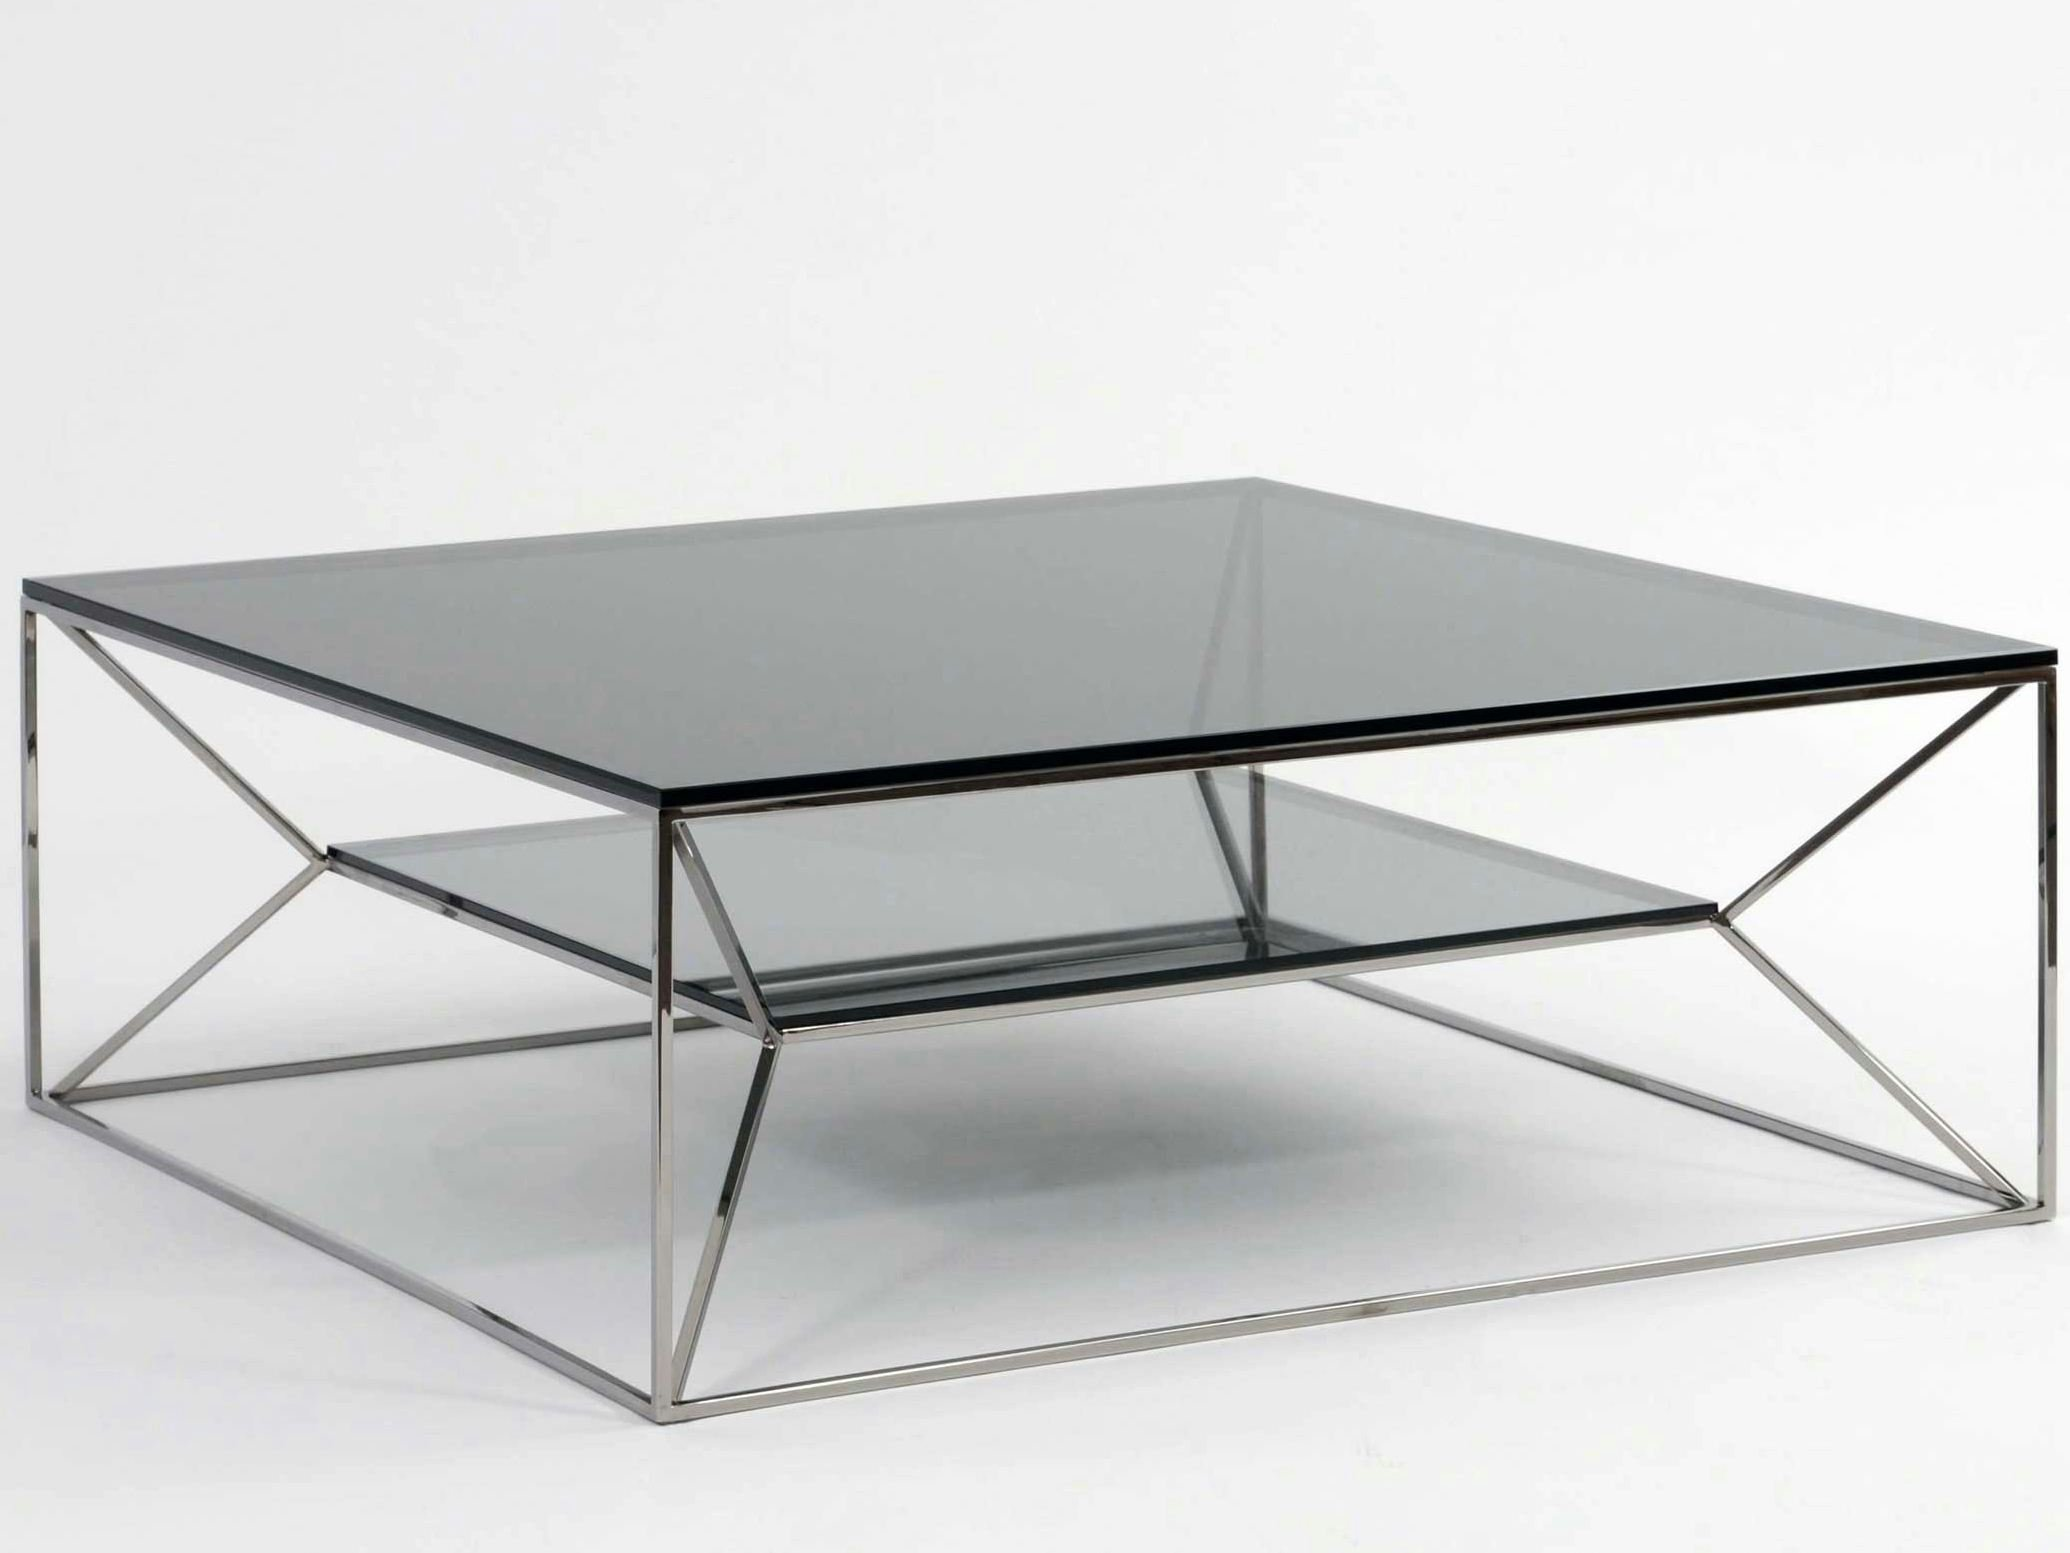 Tribeca coffee table by roche bobois design sacha lakic Roche bobois coffee table